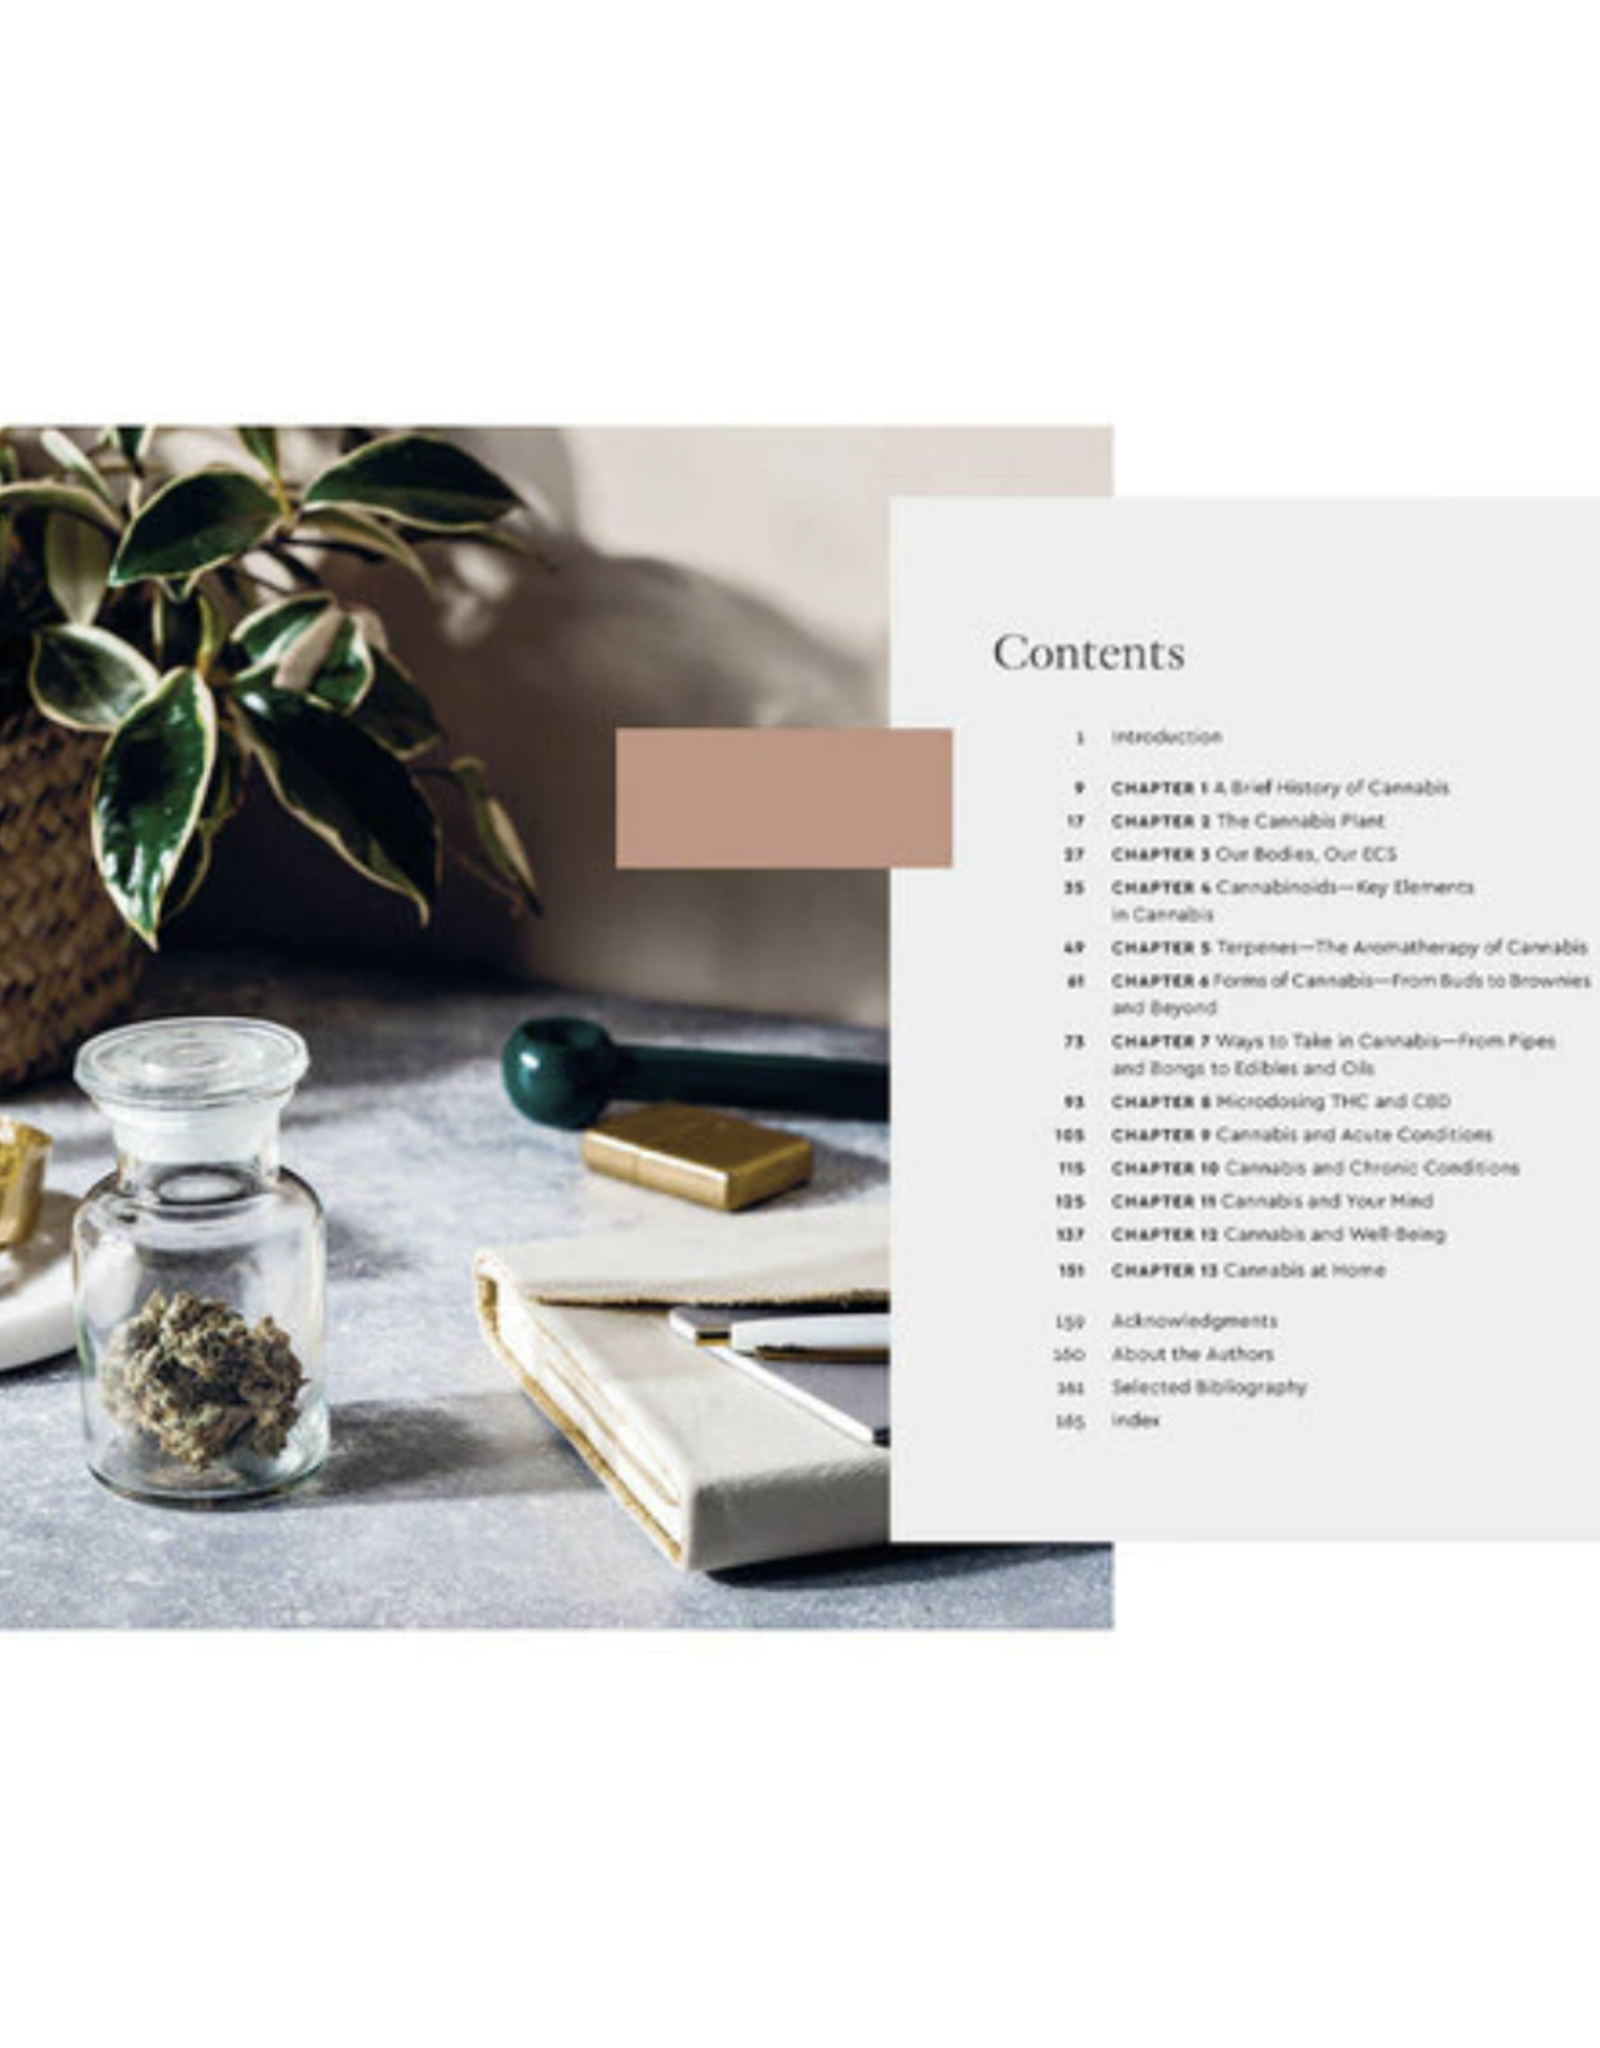 Cannabis & CBD for Health and Wellness: An Essential Guide for Using Nature's Medicine to Relieve Stress, Anxiety, Chronic Pain, Inflammation, and More by Aliza Sherman and Dr. Junella Chin